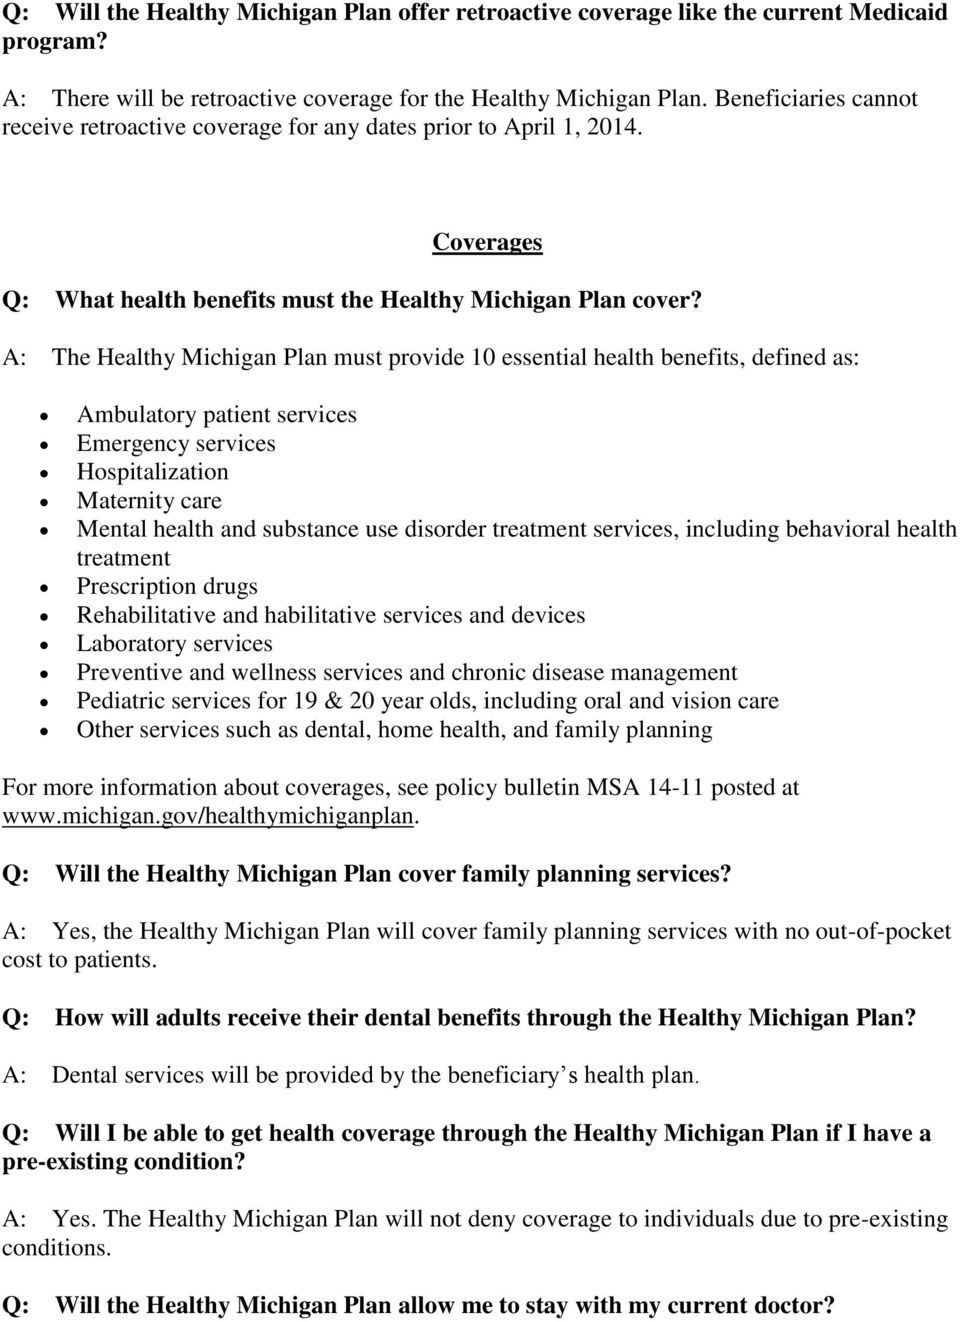 A: The Healthy Michigan Plan must provide 10 essential health benefits, defined as: Ambulatory patient services Emergency services Hospitalization Maternity care Mental health and substance use